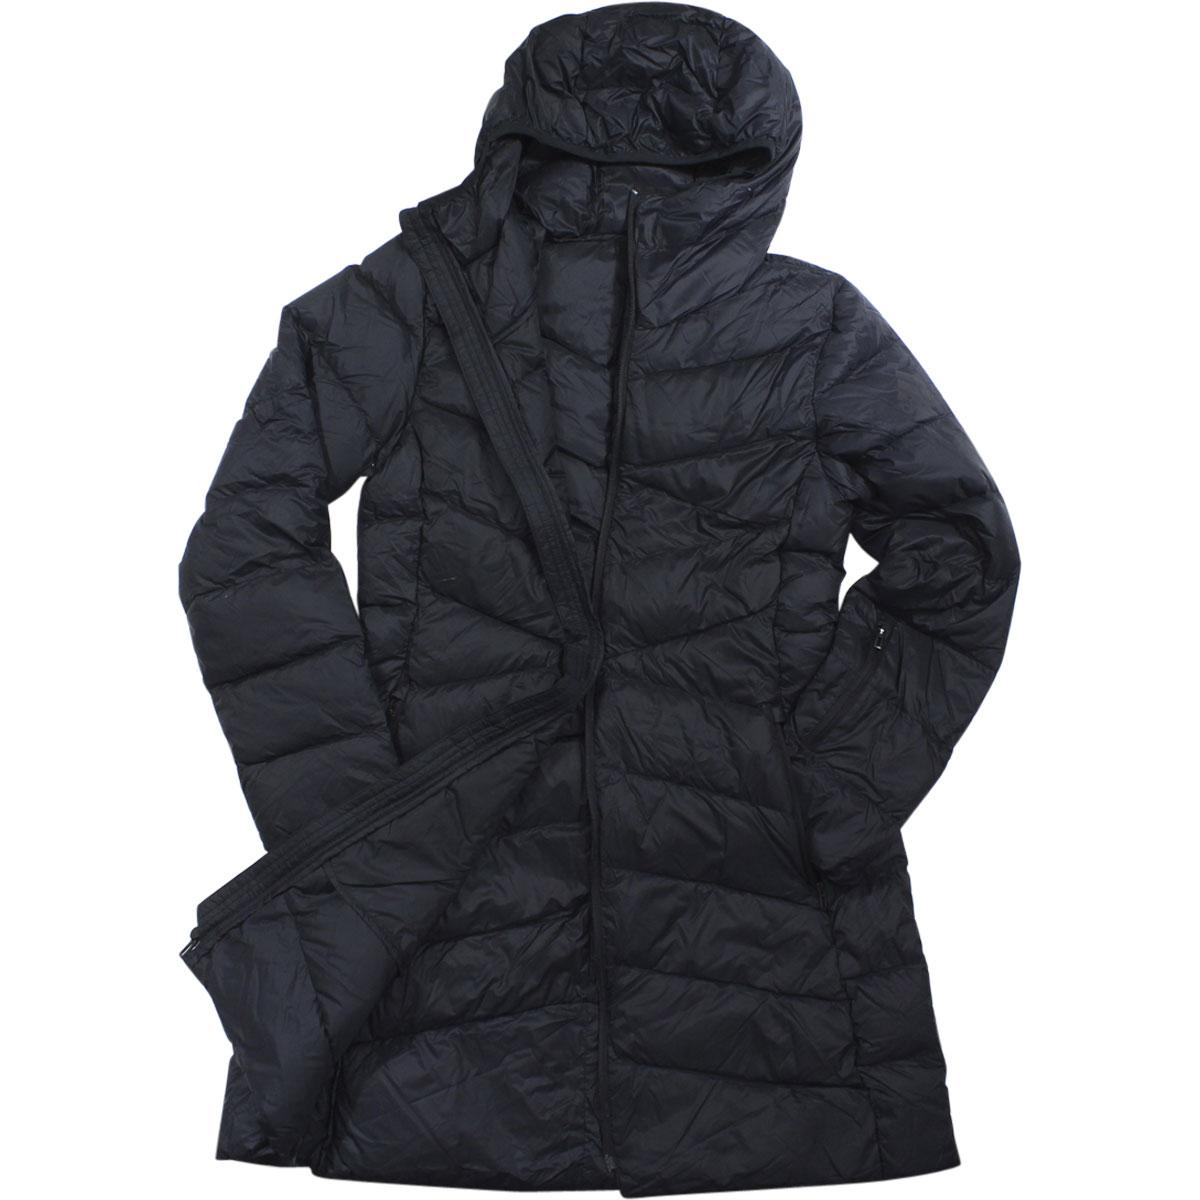 3e7b9a1394a1d Adidas Women's Urban Outdoor Climawarm Nuvic Water Resistant Hooded Jacket  by Adidas